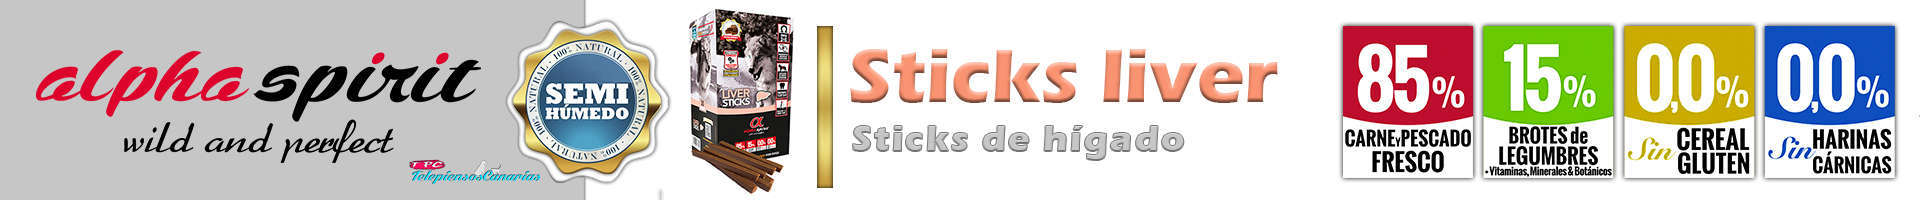 Alpha Spirit sticks liver, perfecto stick sano y natural